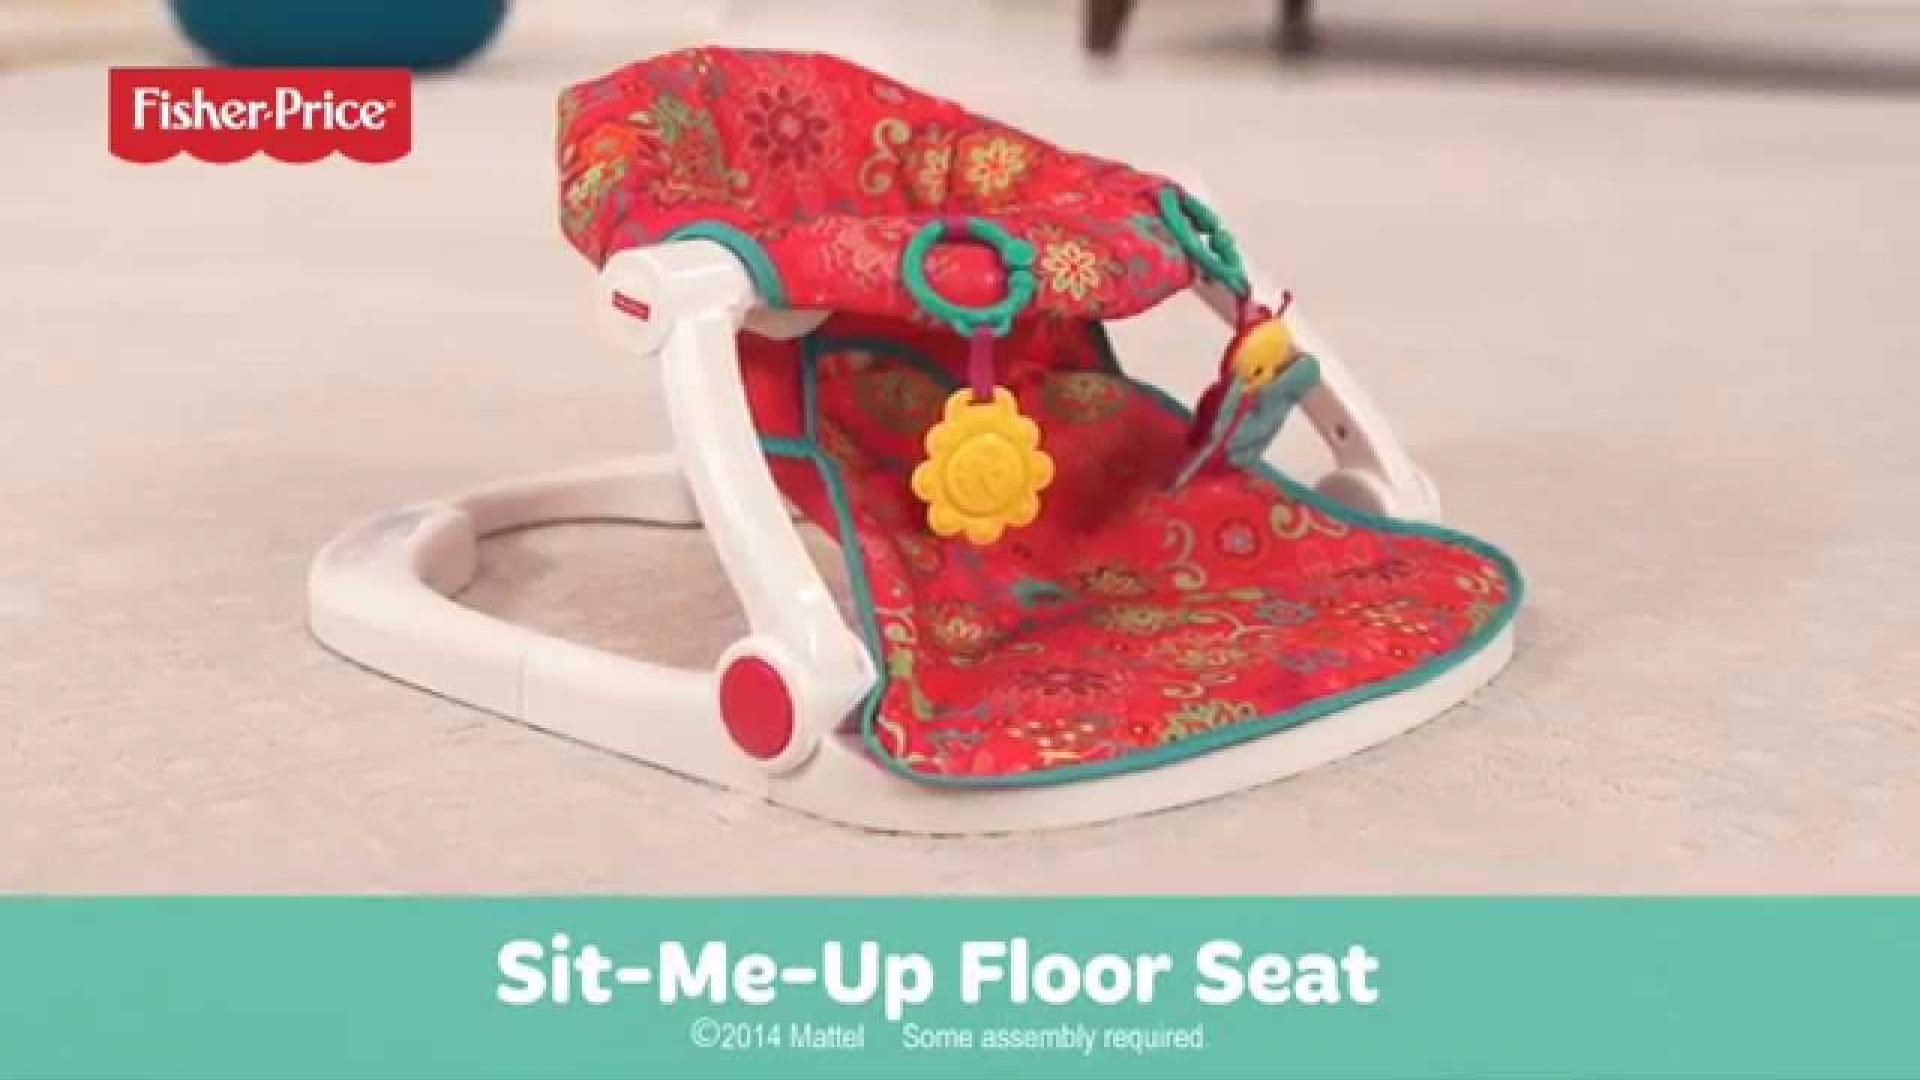 Sit Me-Up Floor Seat - Demo